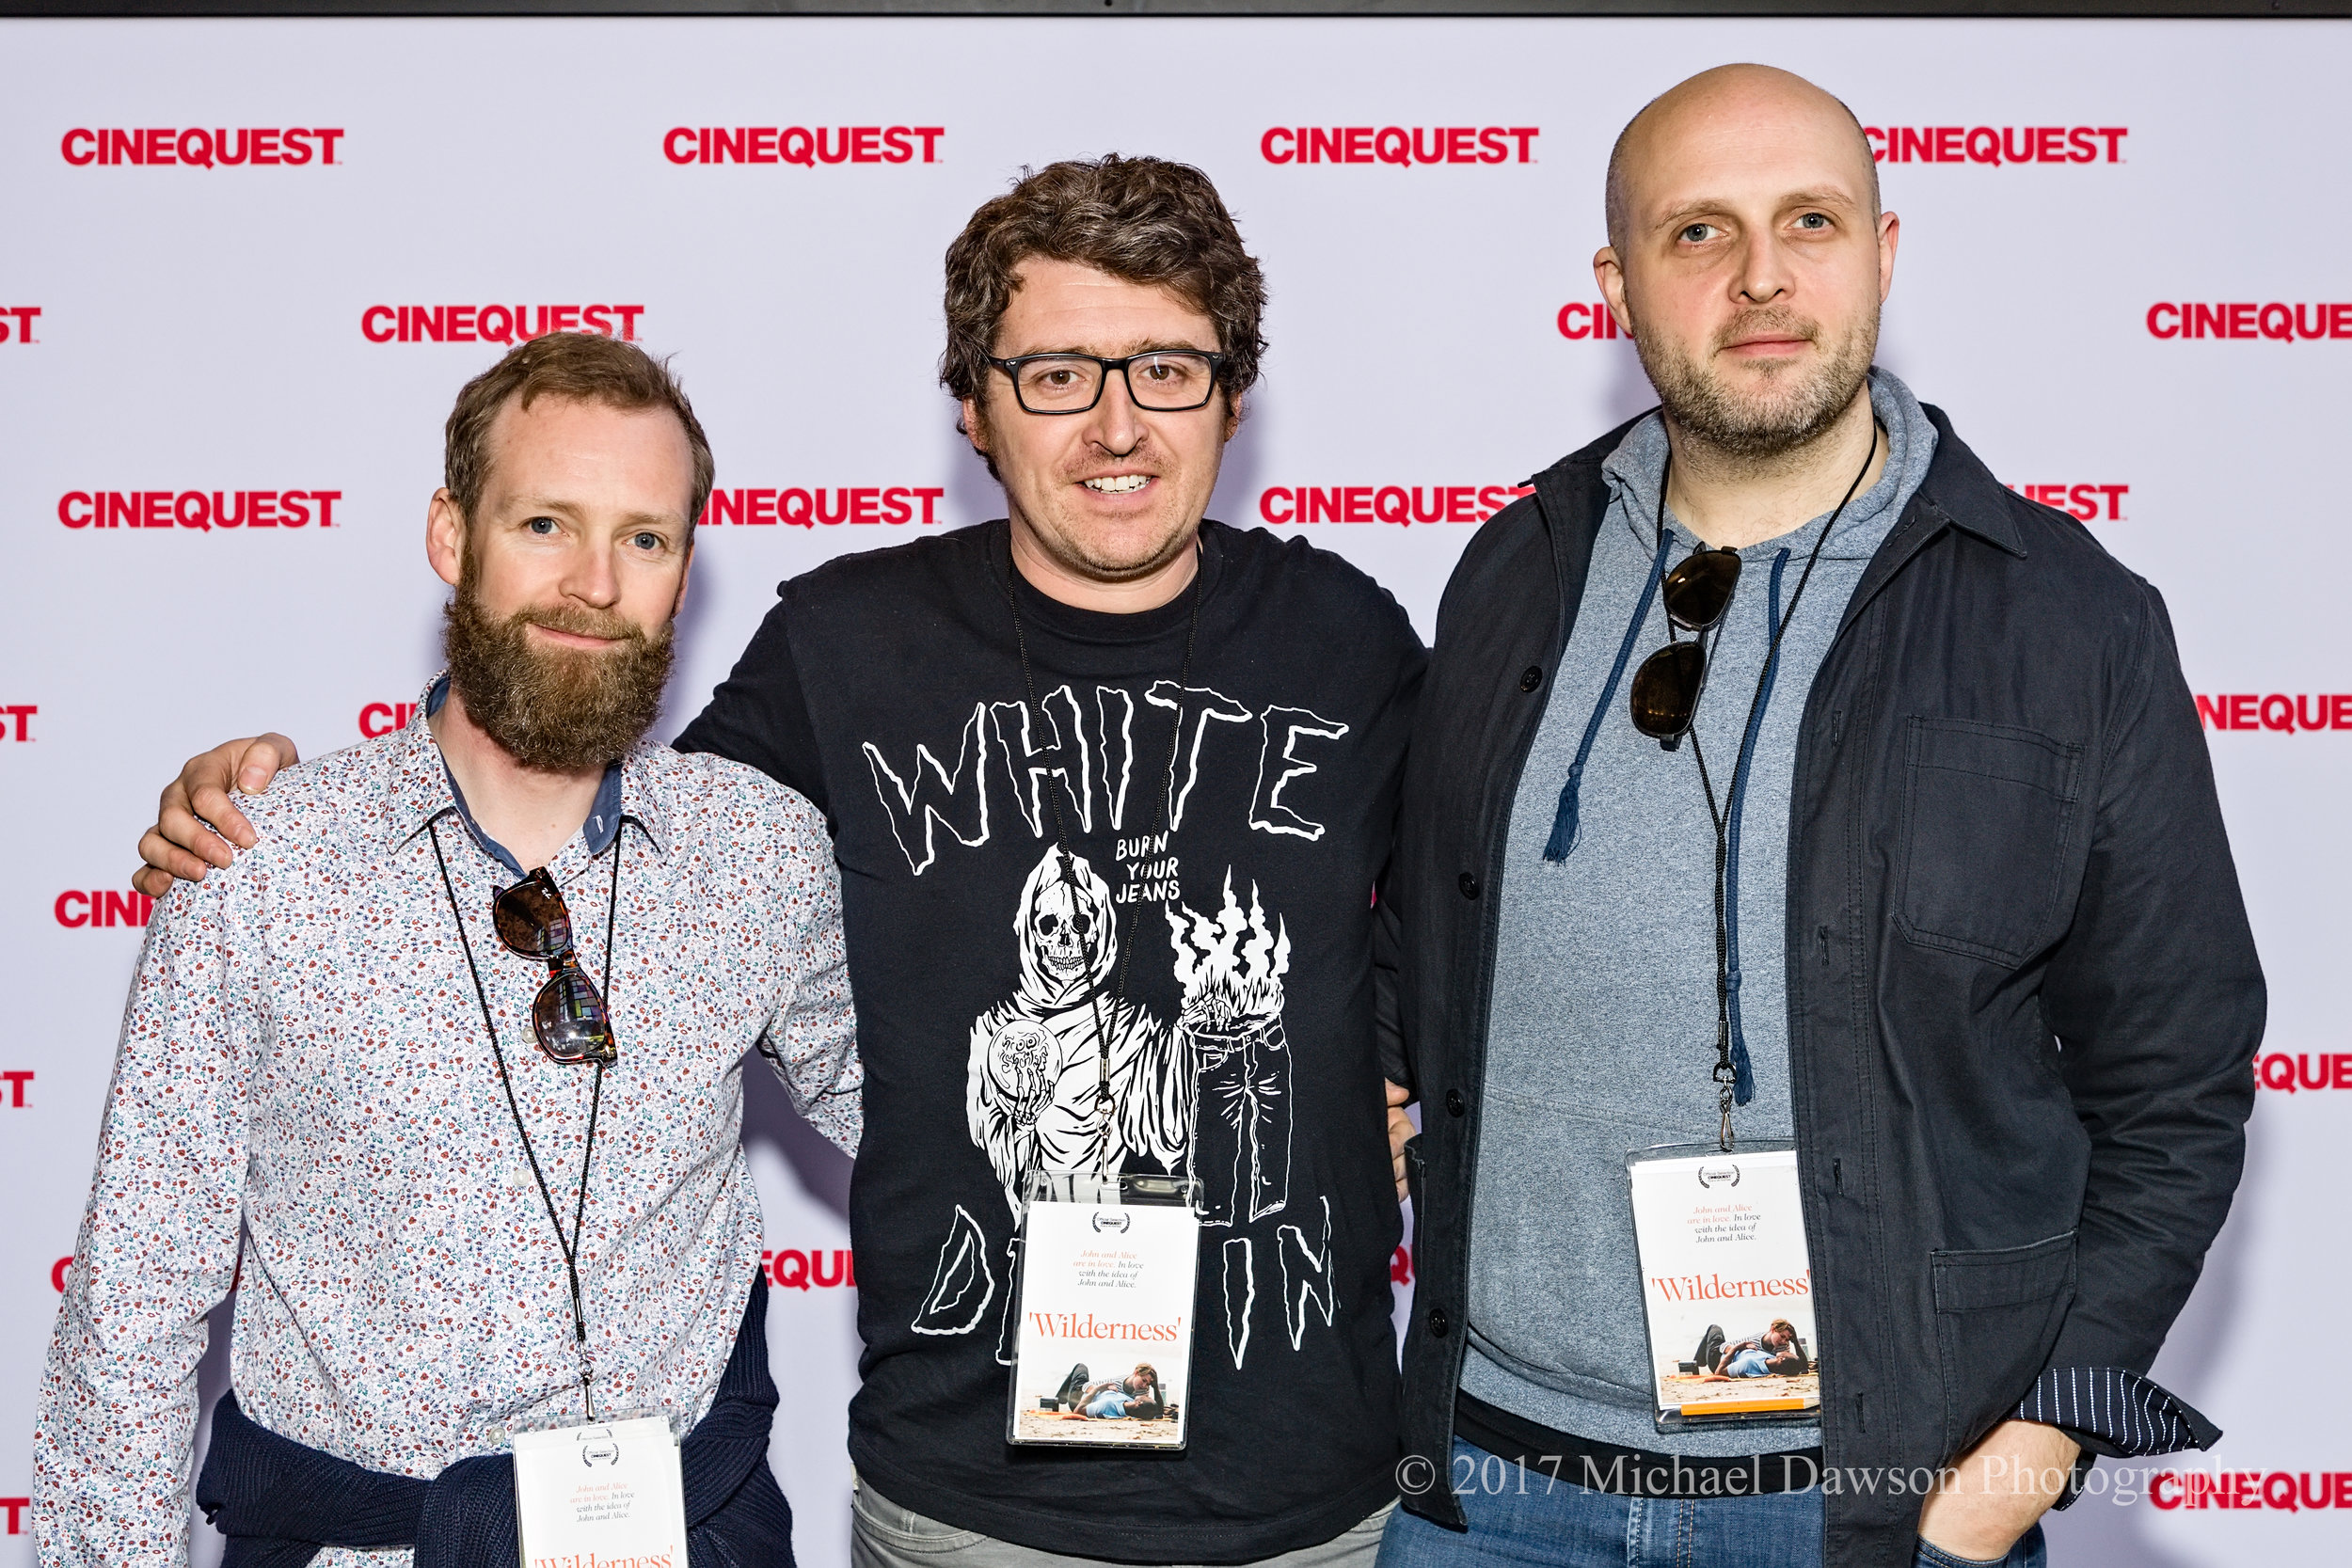 Executive Producer Kingsley Marshall, me, and director Justin John Doherty at the 'Wilderness' World Premiere, March 2017.